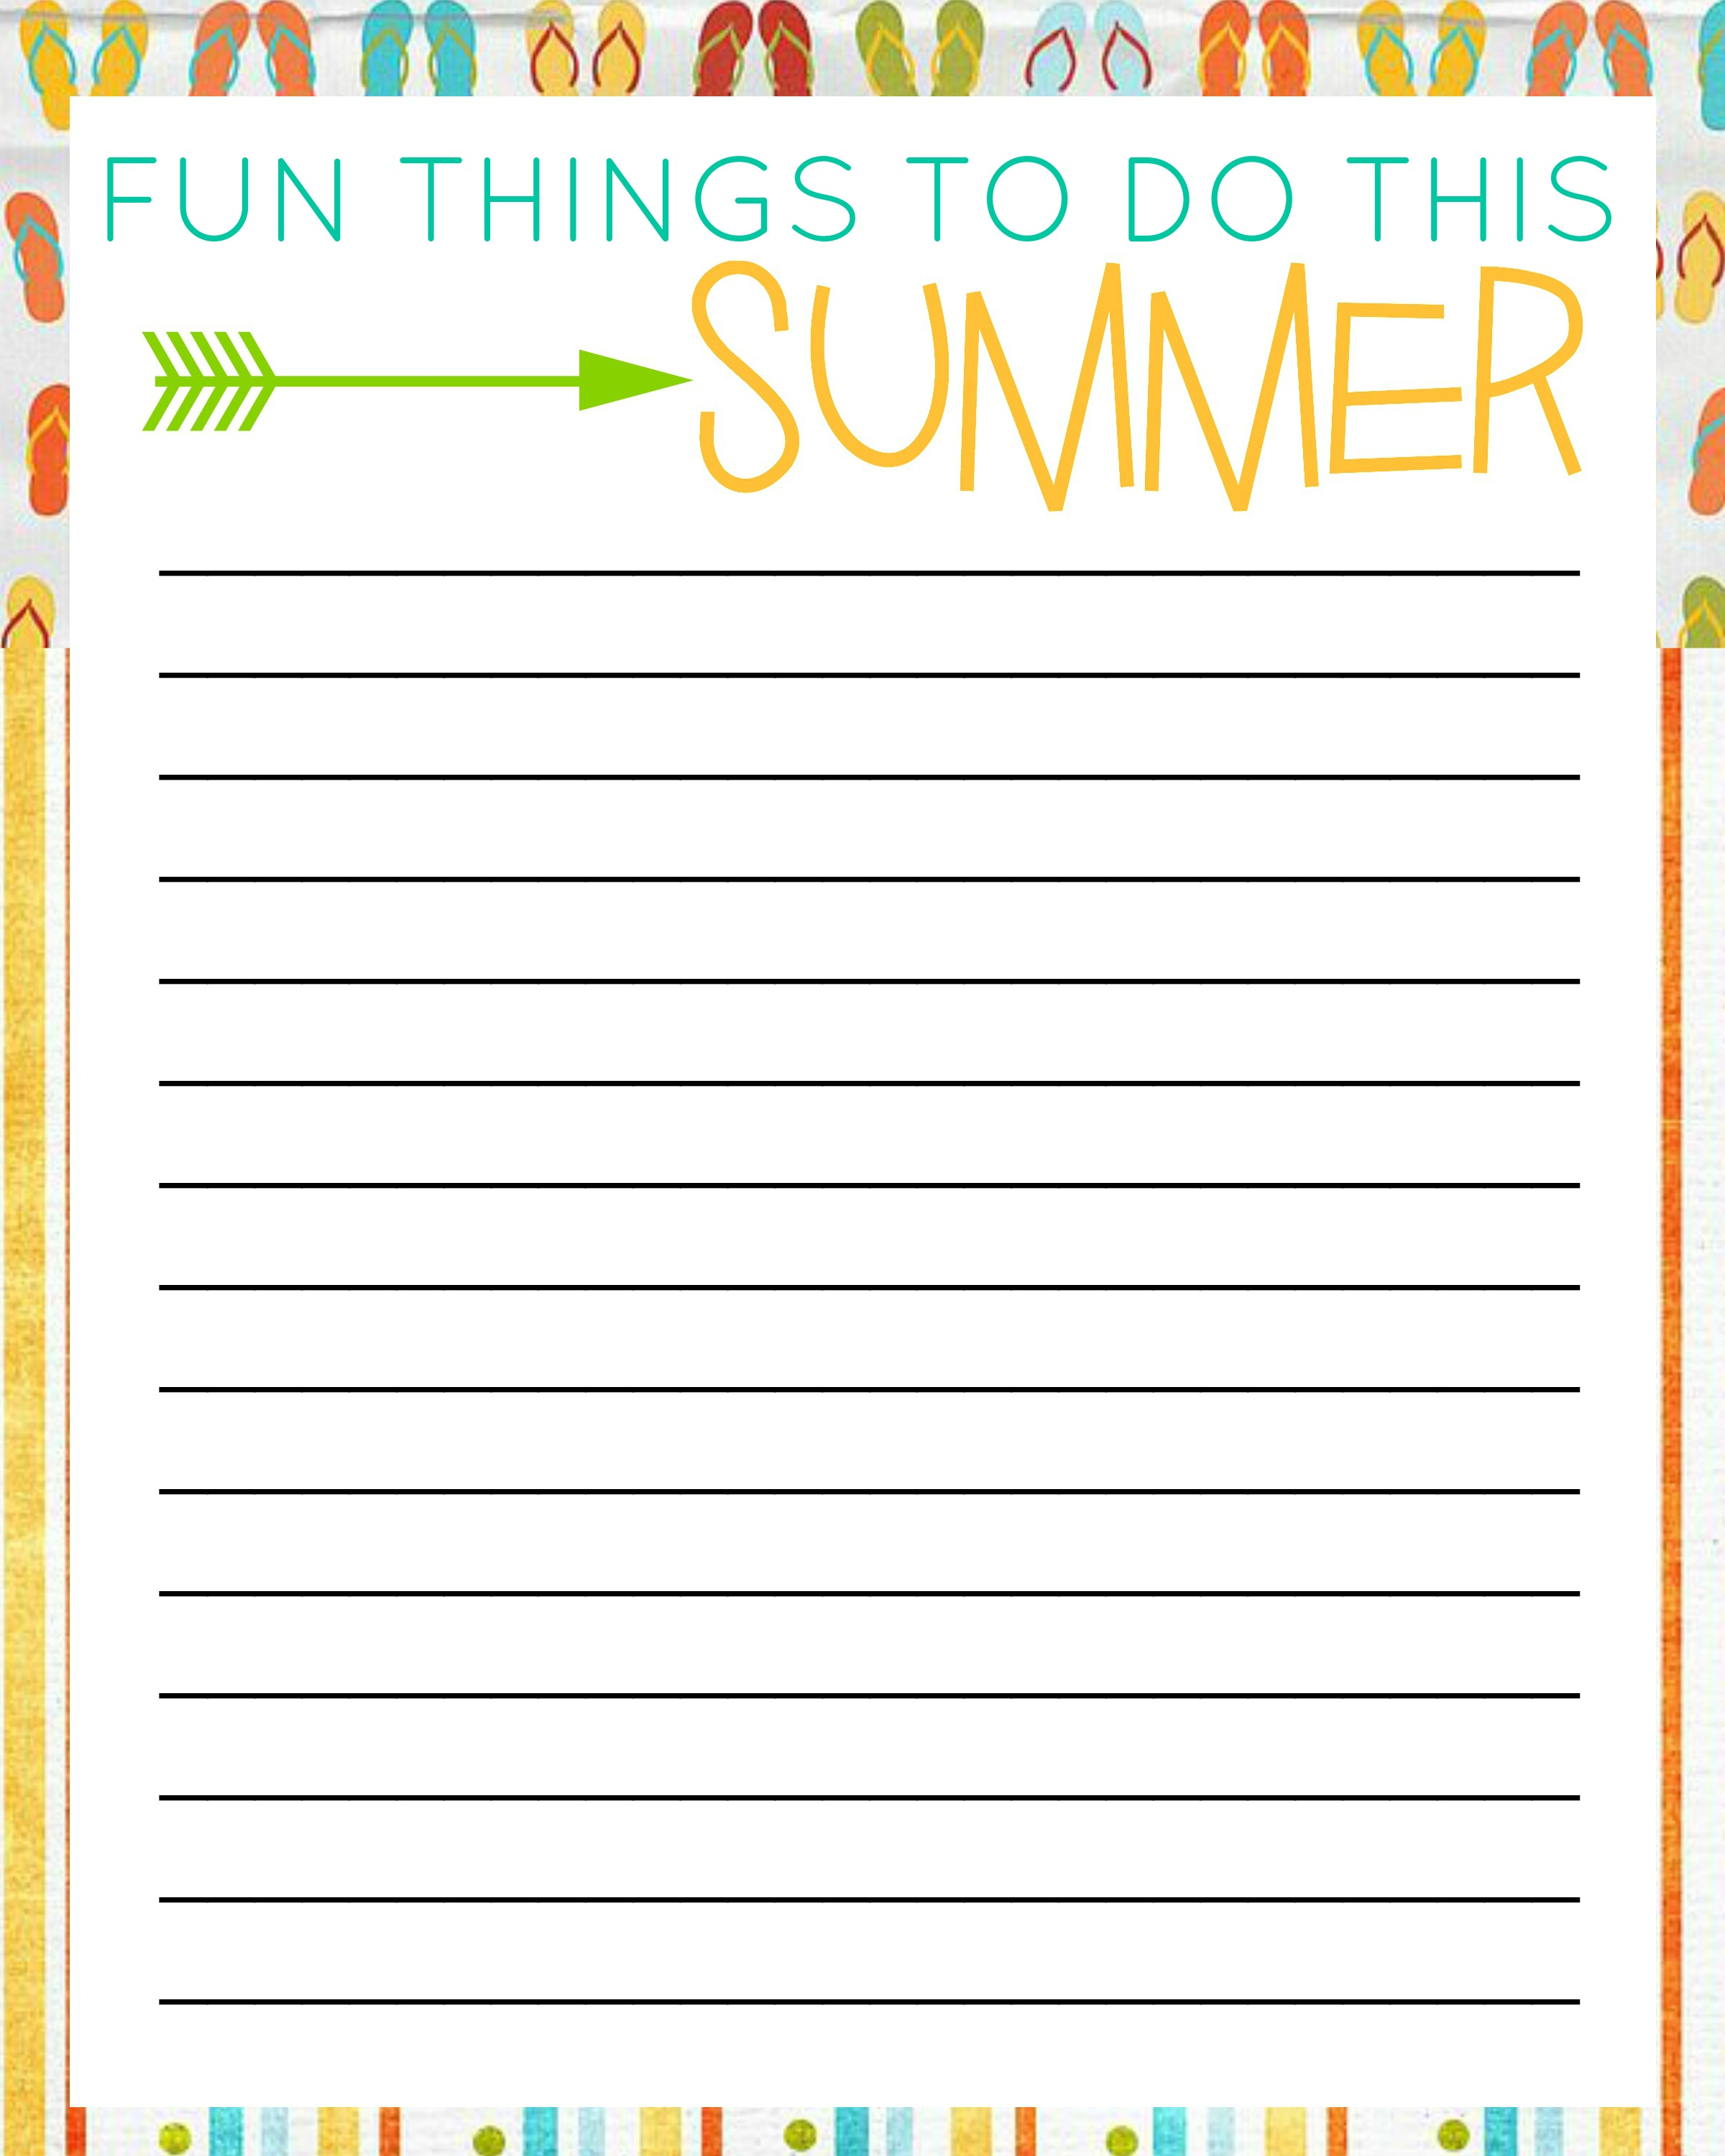 50 Things To Do This Summer With Free Printable Bucket